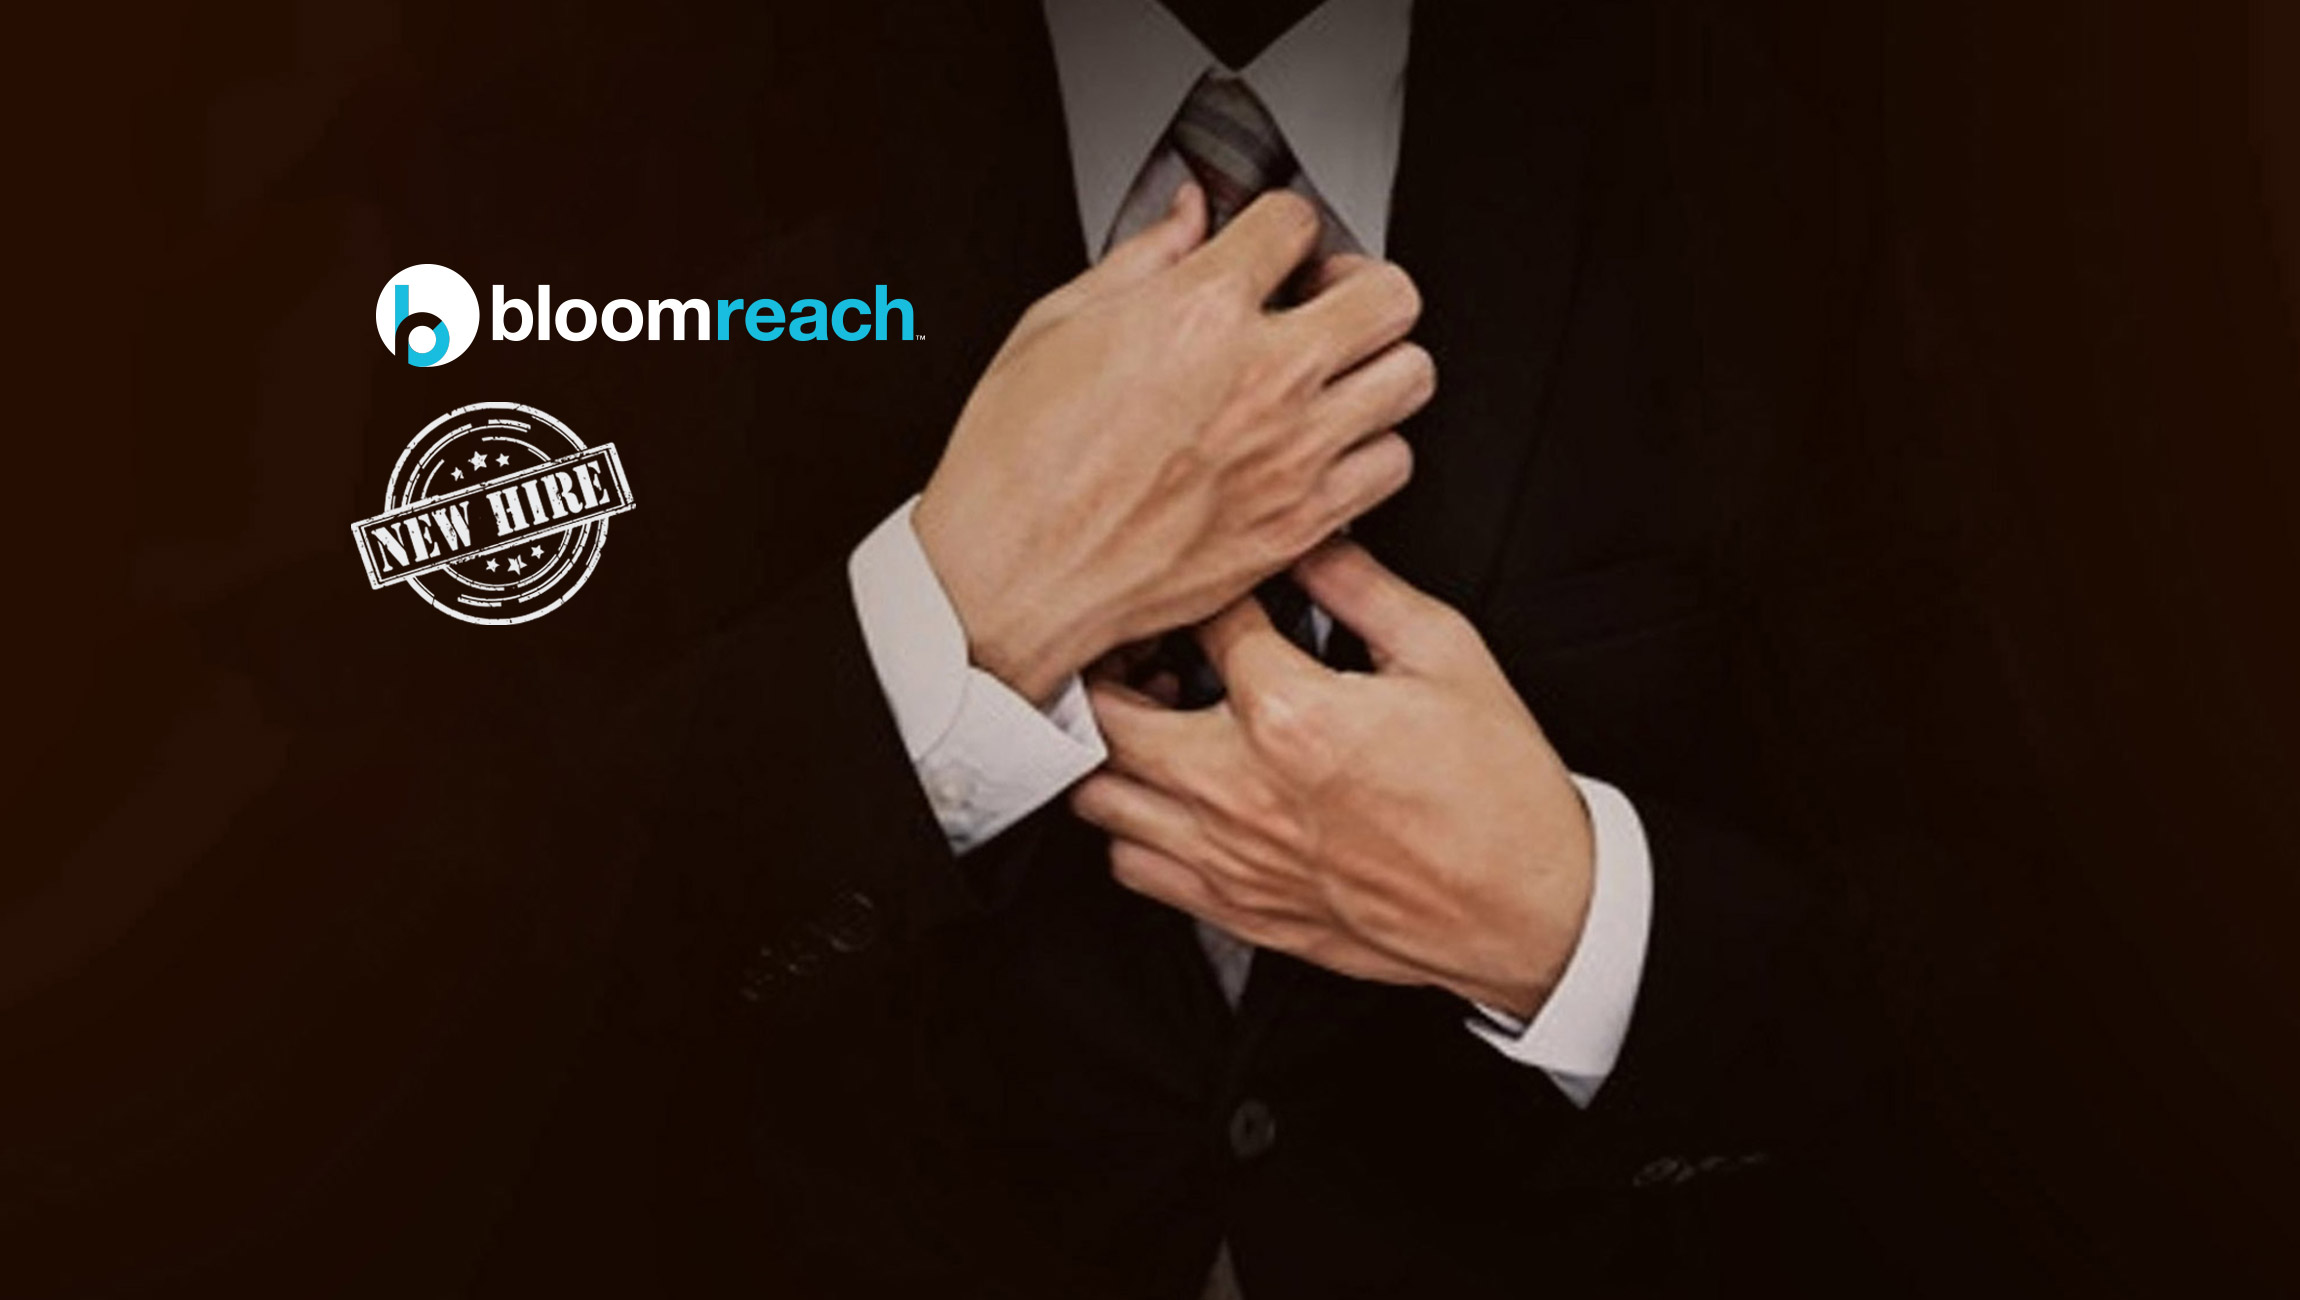 Bloomreach Appoints Rob Rosenthal as Chief Revenue Officer